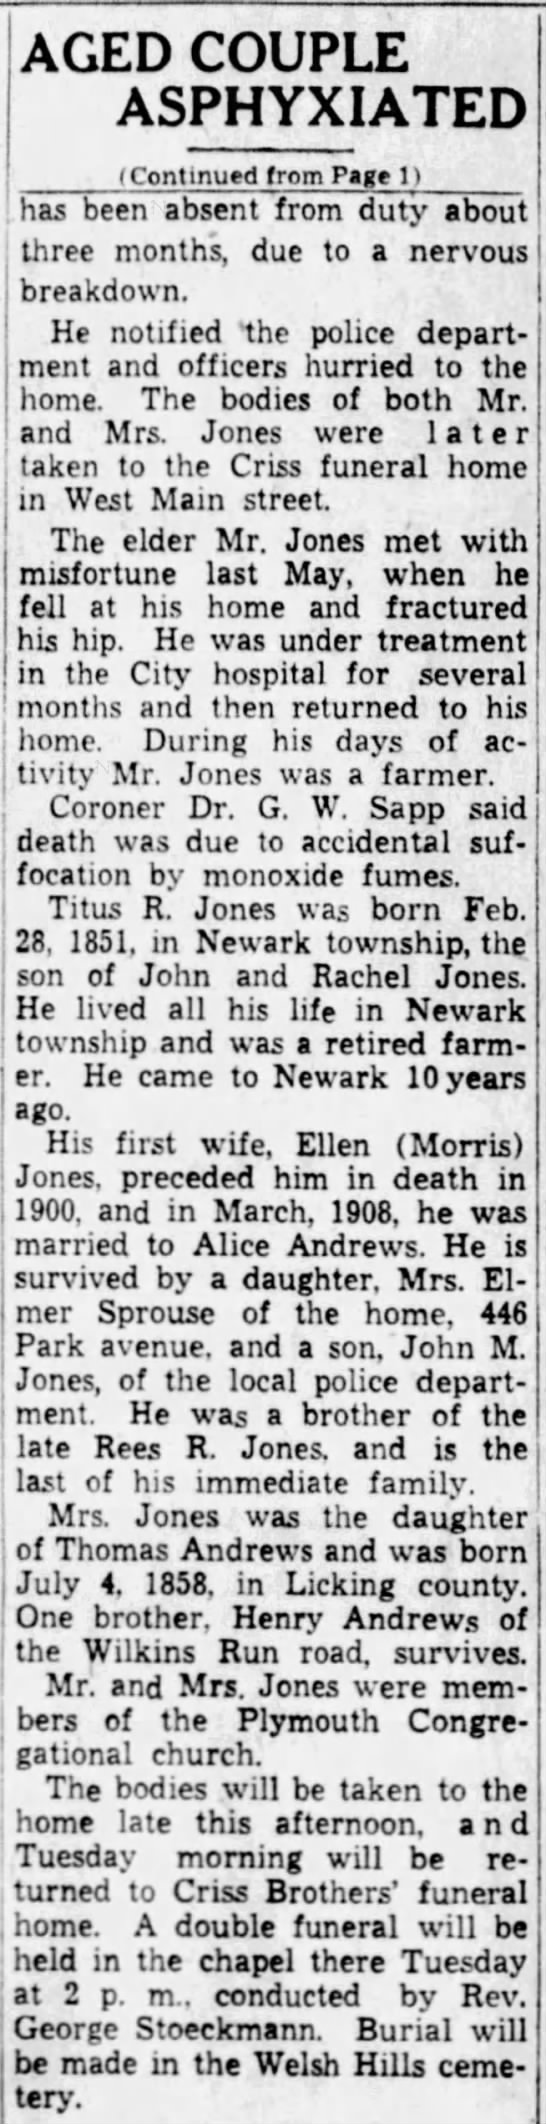 Elenor JONES Sprouse finds Mr and Mrs Titus Jones Dead in Bed - 2 - AGED COUPLE ASPHYXIATED (Continued from Page 1)...